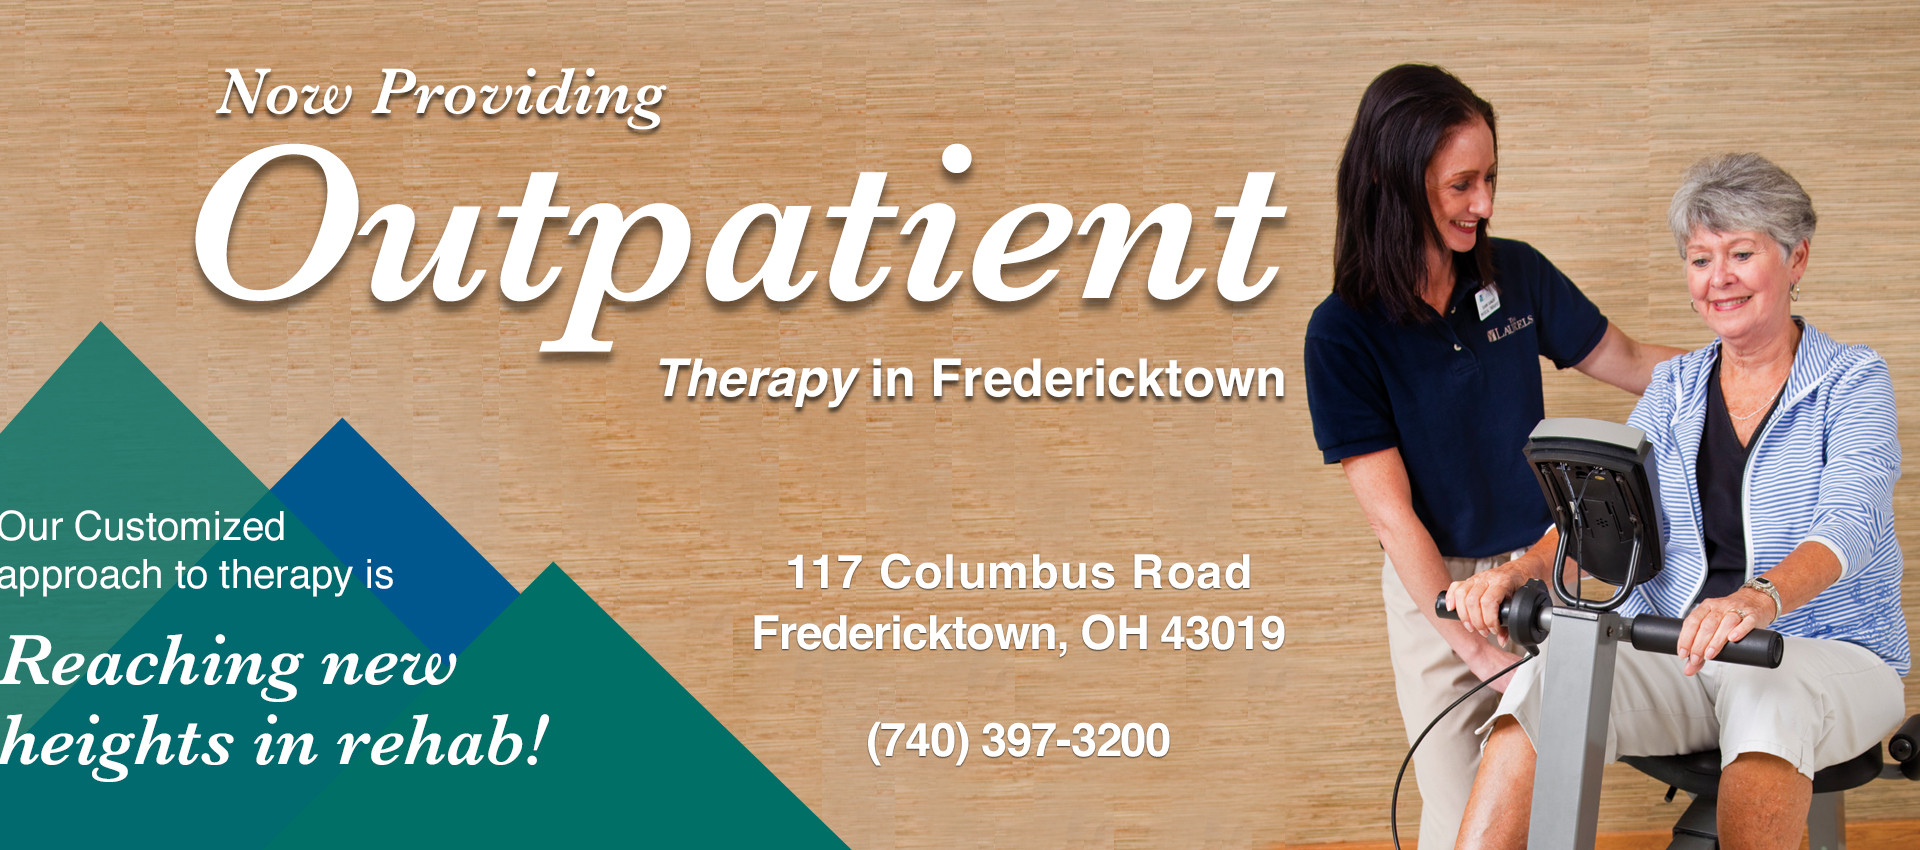 Now Providing Outpatient Therapy in Fredericktown